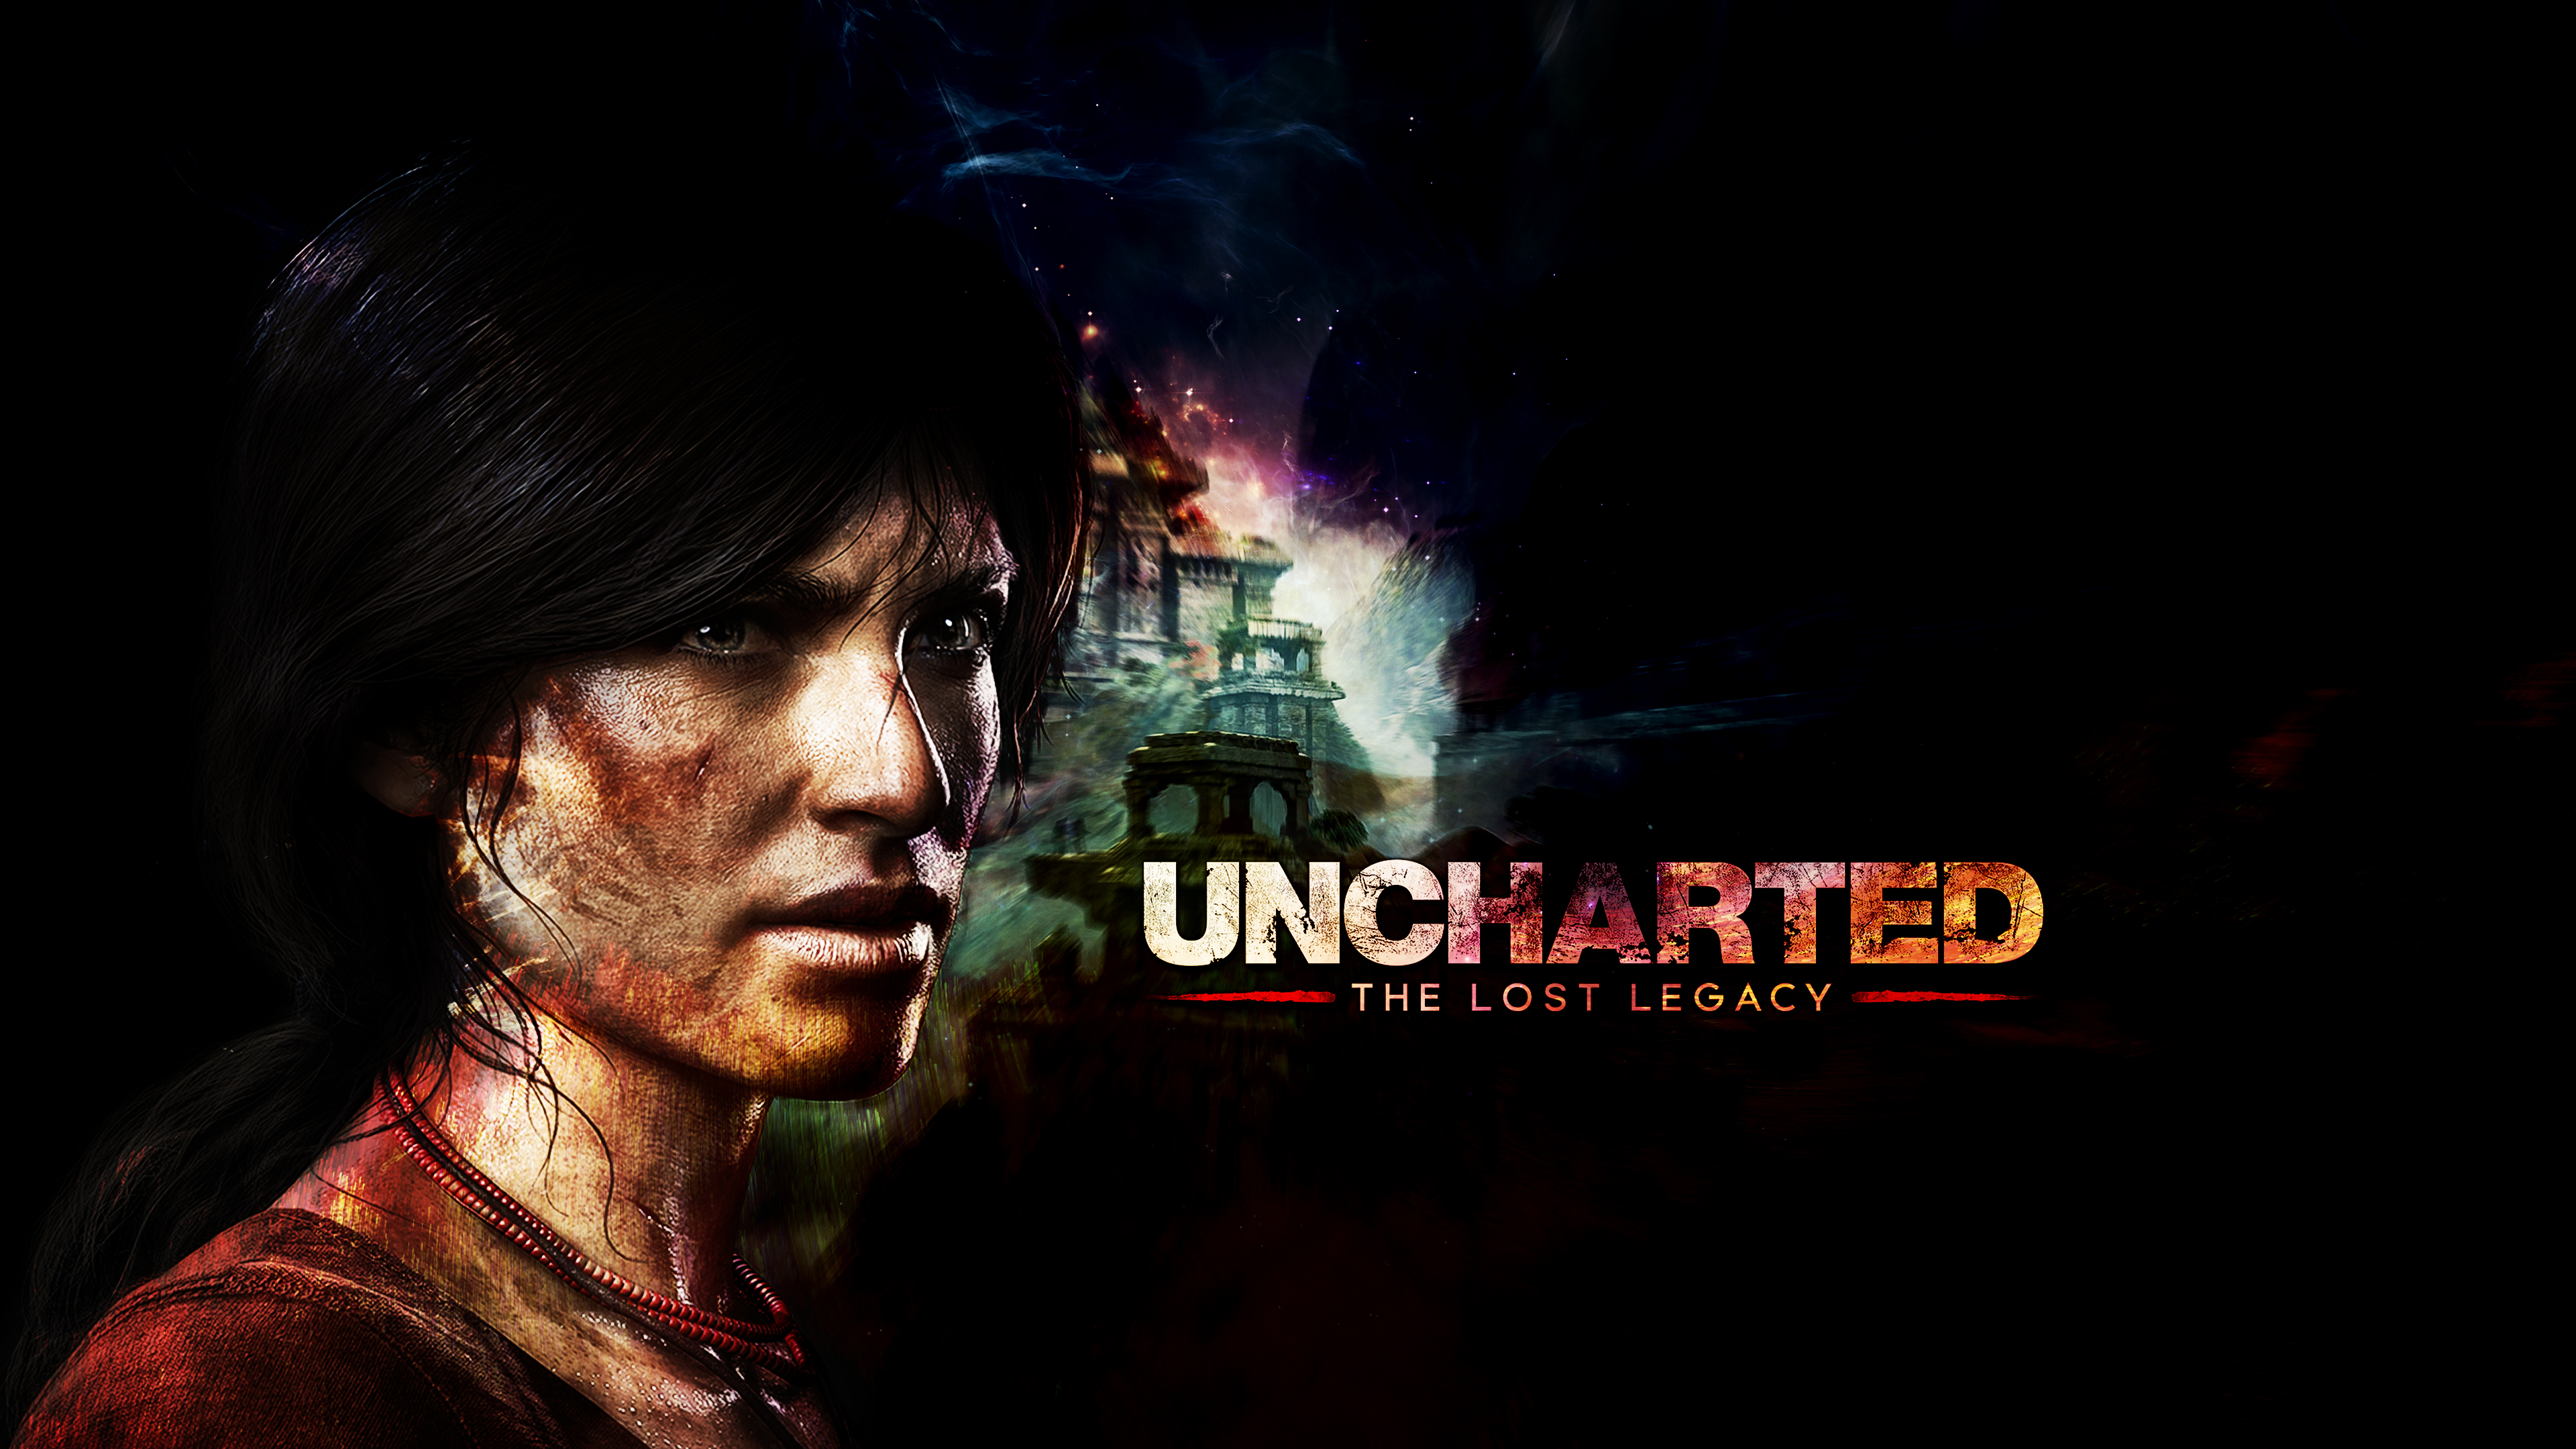 Хлоя - Uncharted: The Lost Legacy 4K, Арт